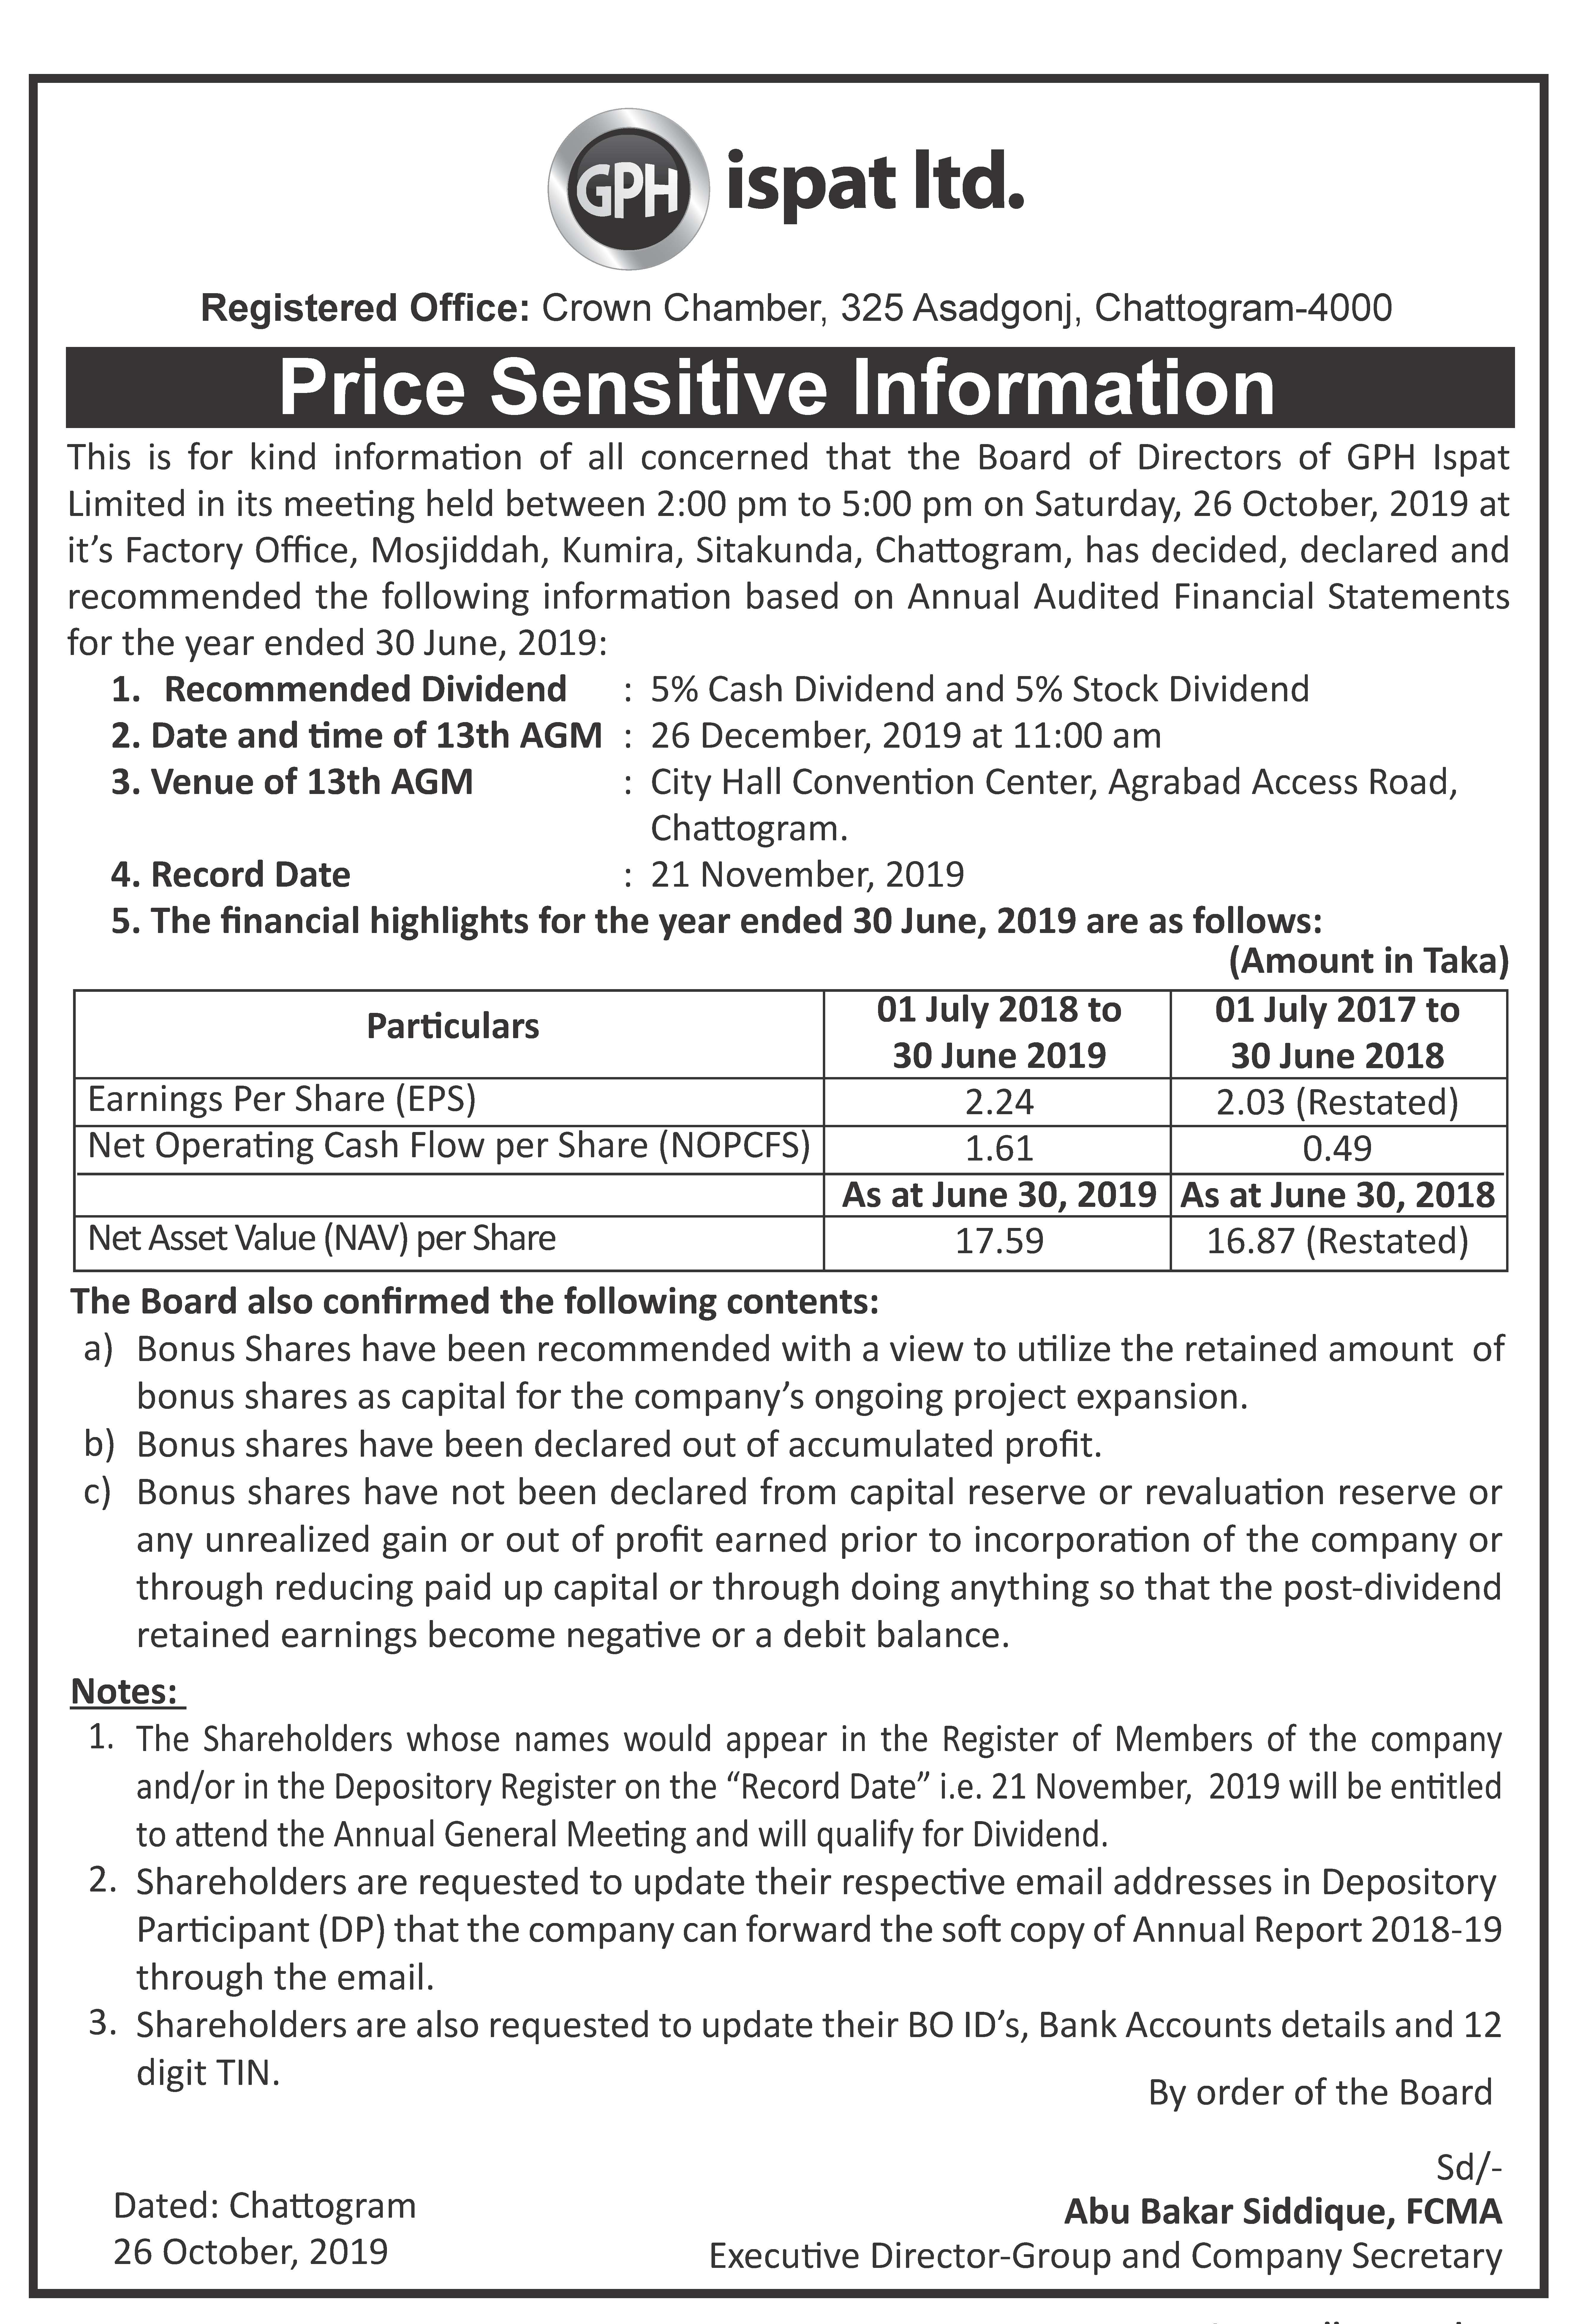 Price Sensitive Information